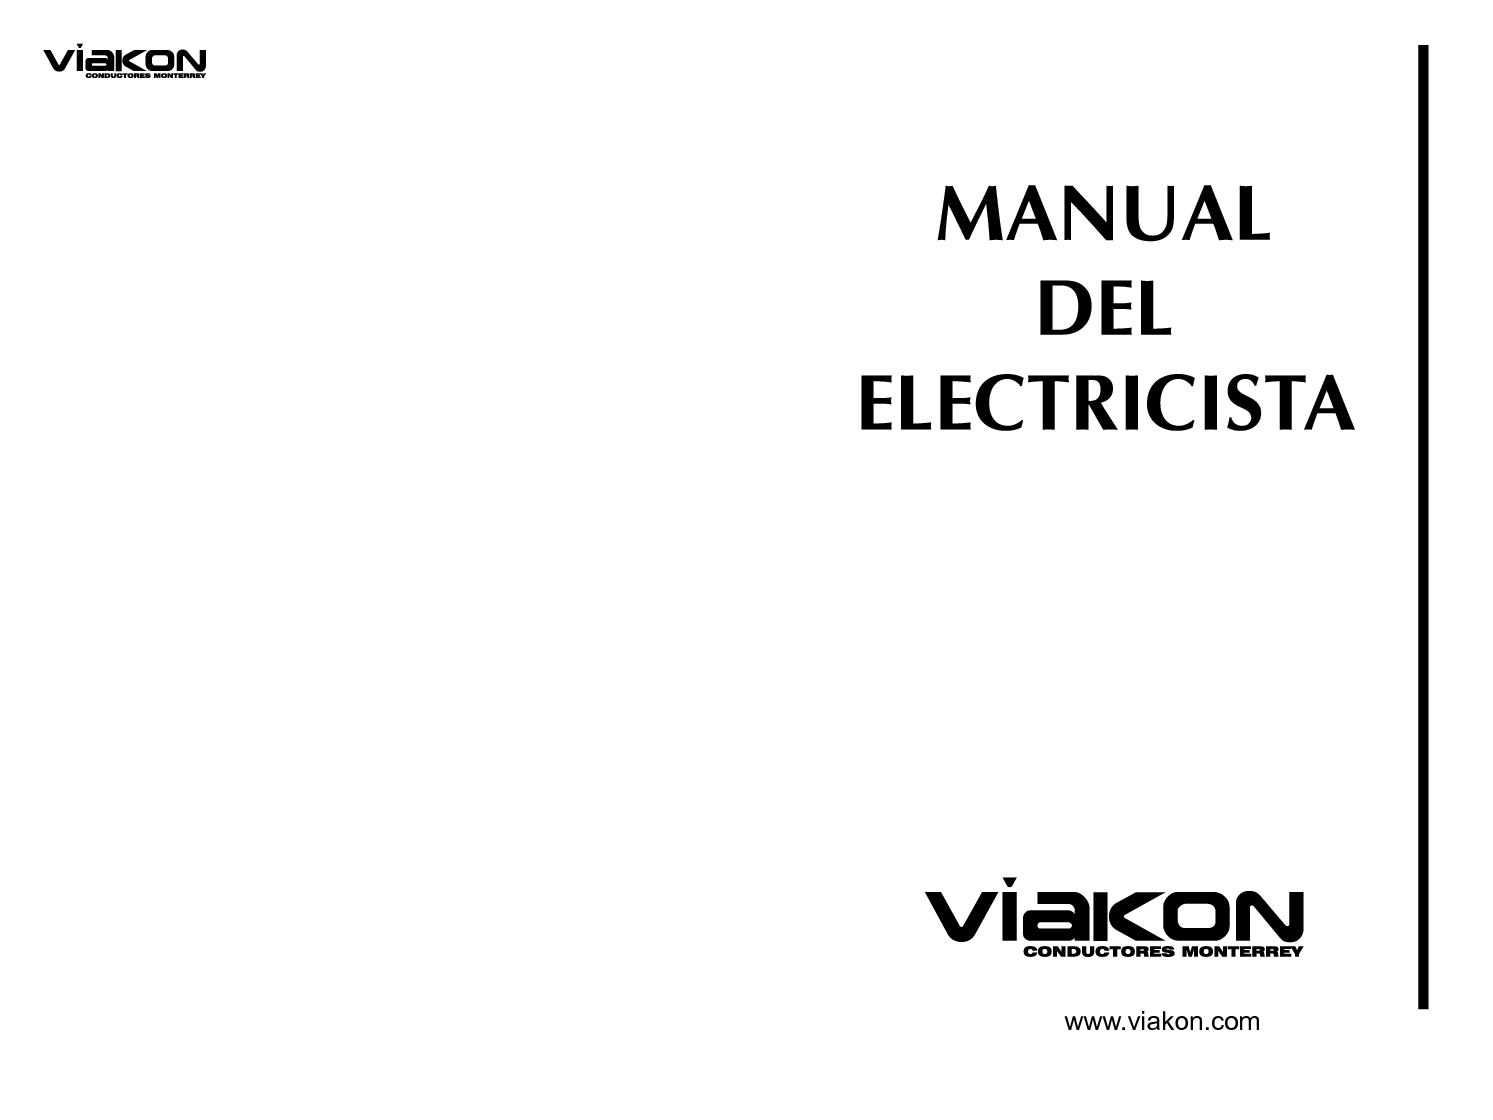 MANUAL ELECTRICISTA VIAKON PDF